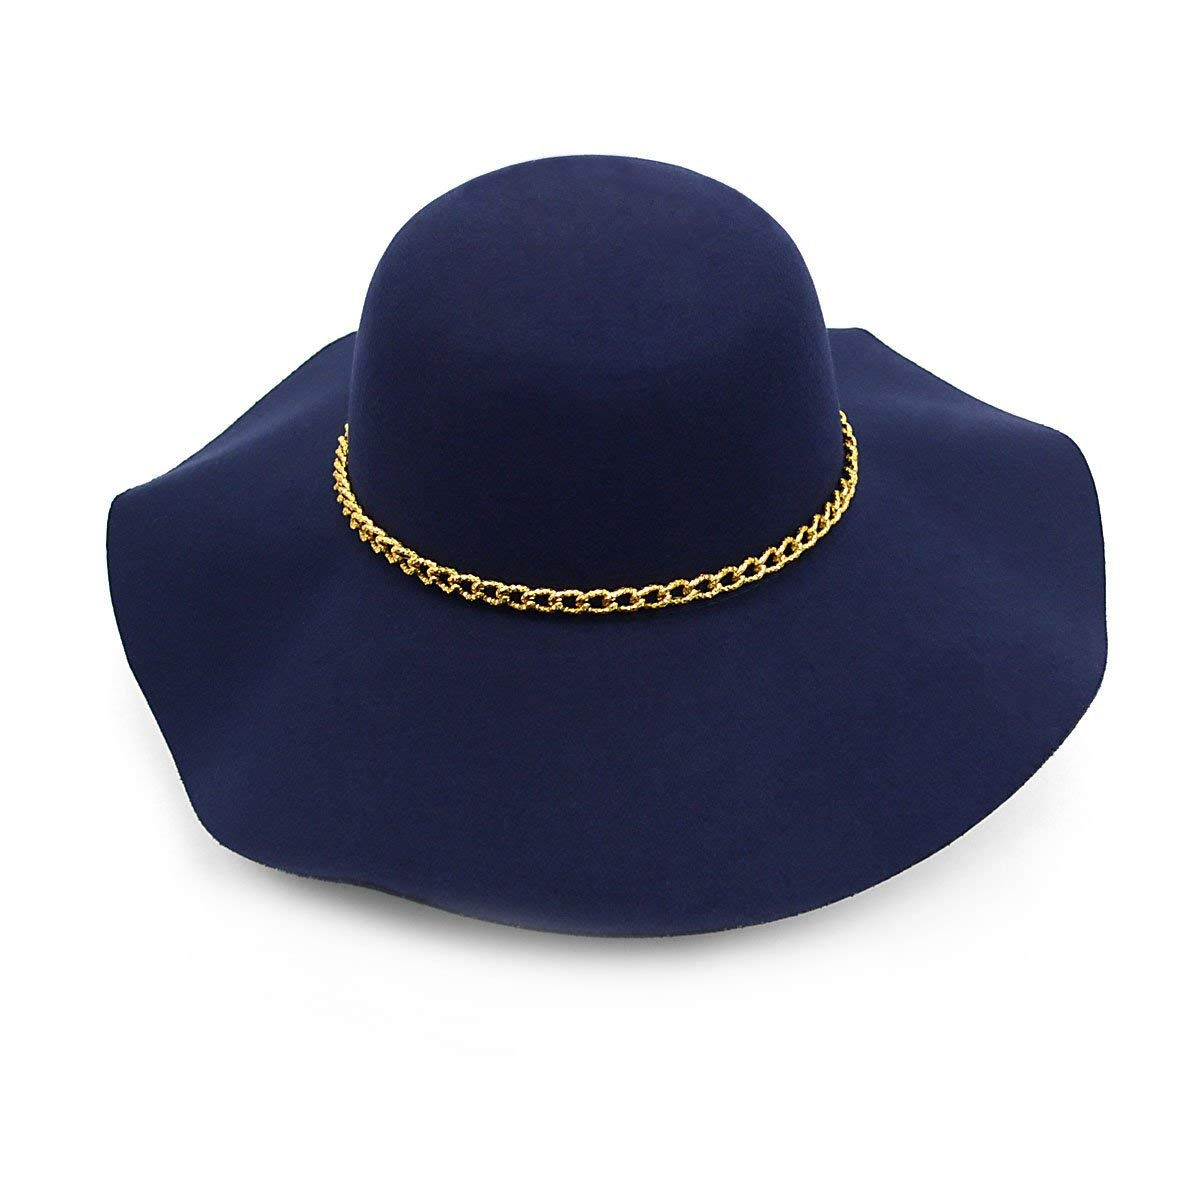 063cb09bdb6 Get Quotations · Women s Felt Wide Brim Floppy Fedora Hat With Gold Tone  Chain Band